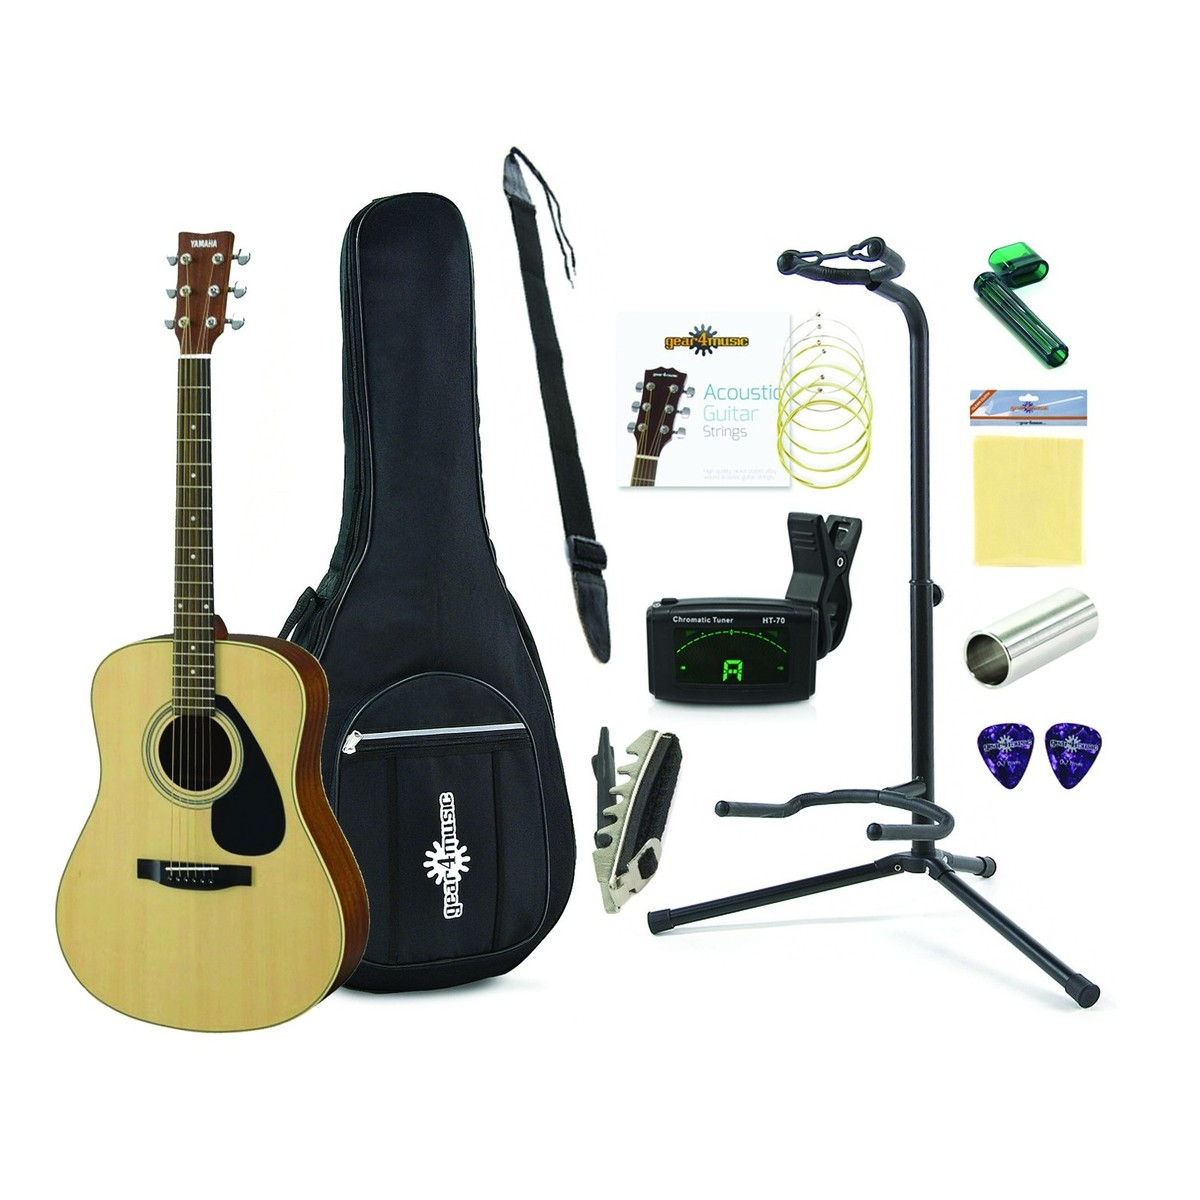 Yamaha F370dw Acoustic Guitar Natural With Accessory Pack